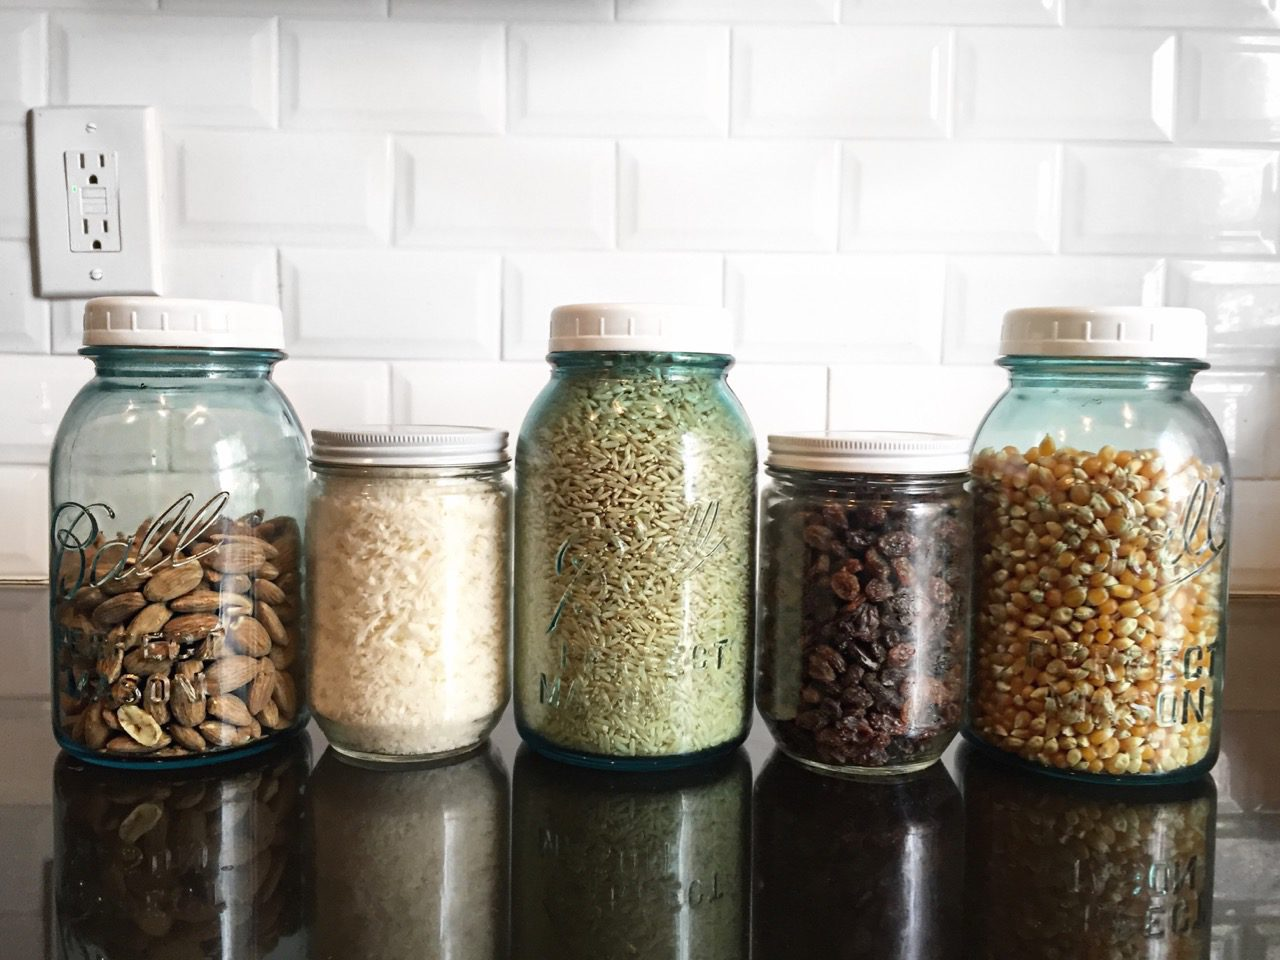 Reusing old jars helps save money and the environment